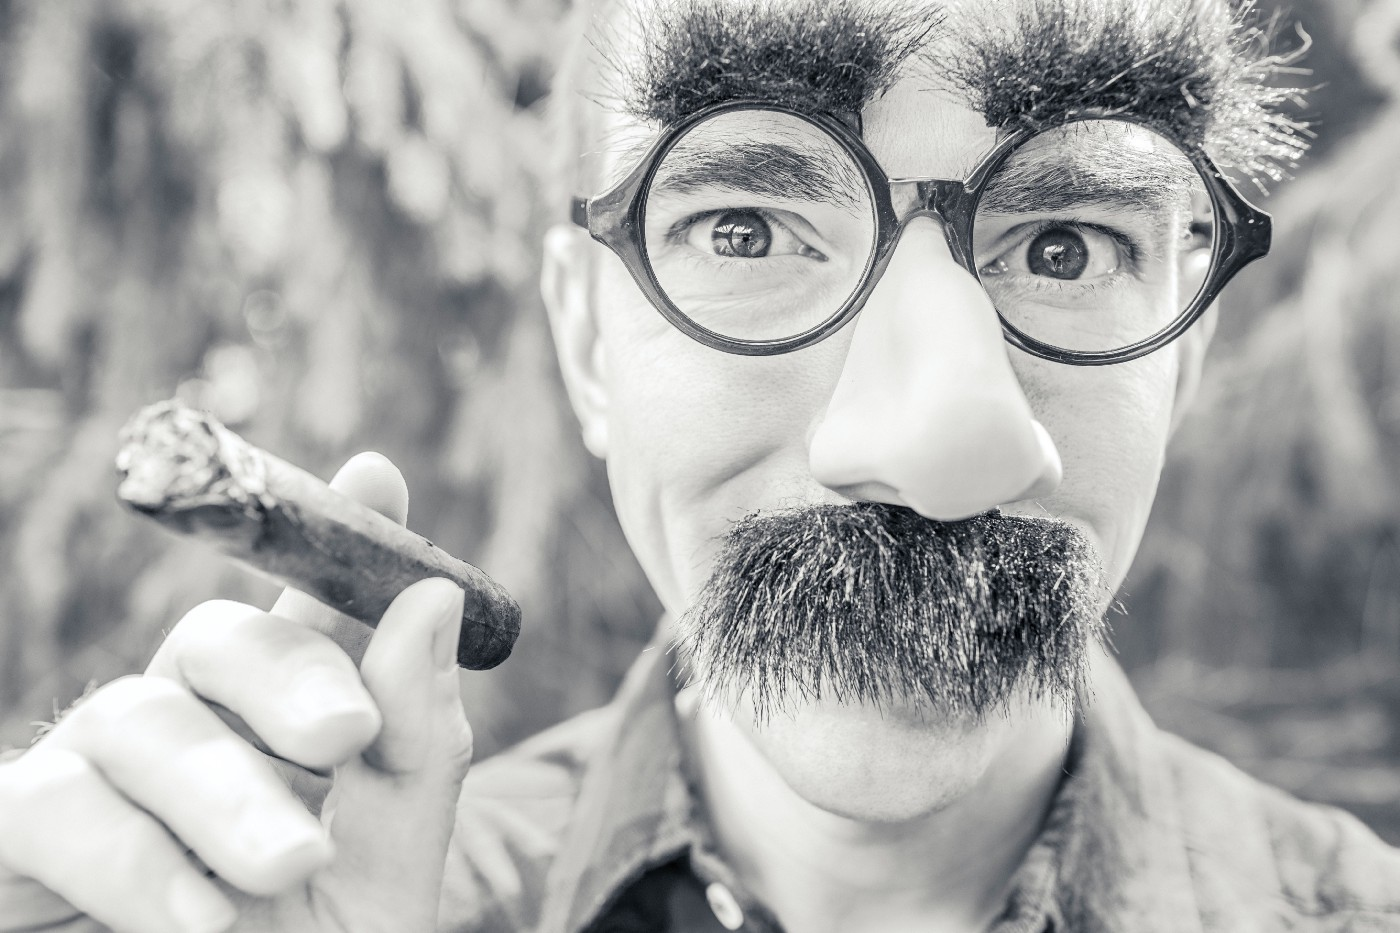 man wearing a fake Groucho Marx eyebrows and moustache and holding a cigar